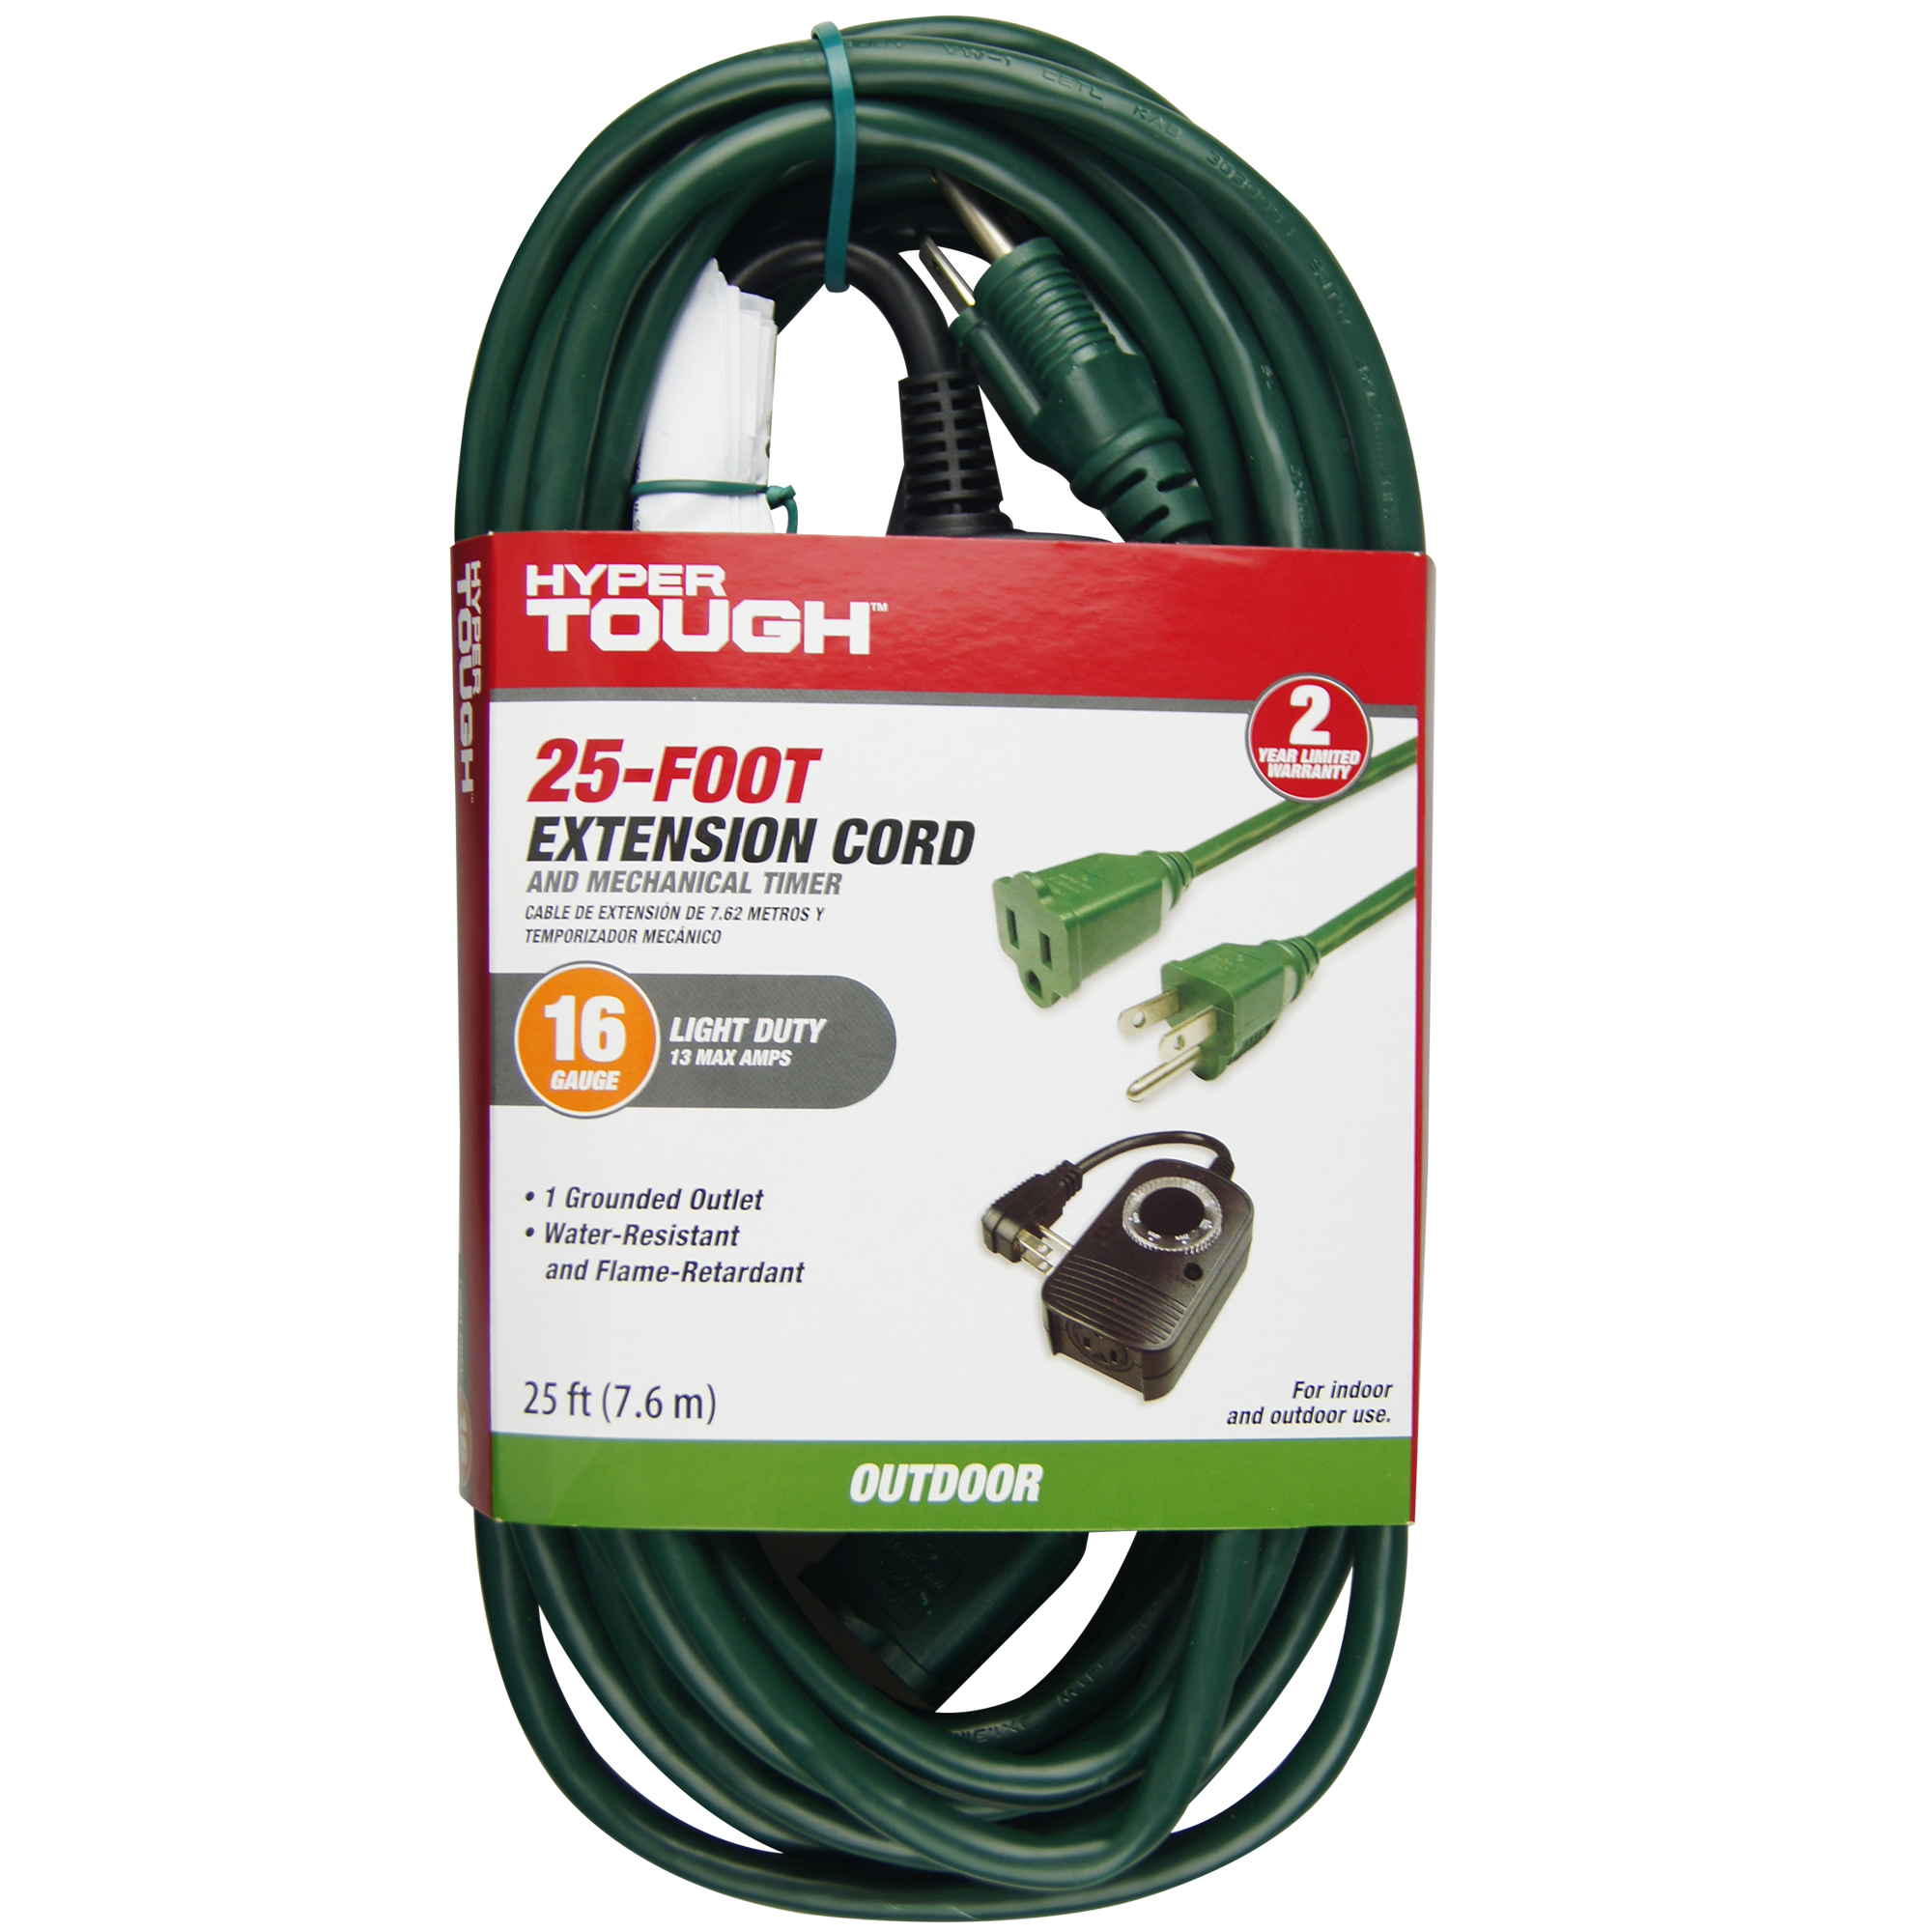 Hyper Tough 1-outlet 25ft Cord And Timer